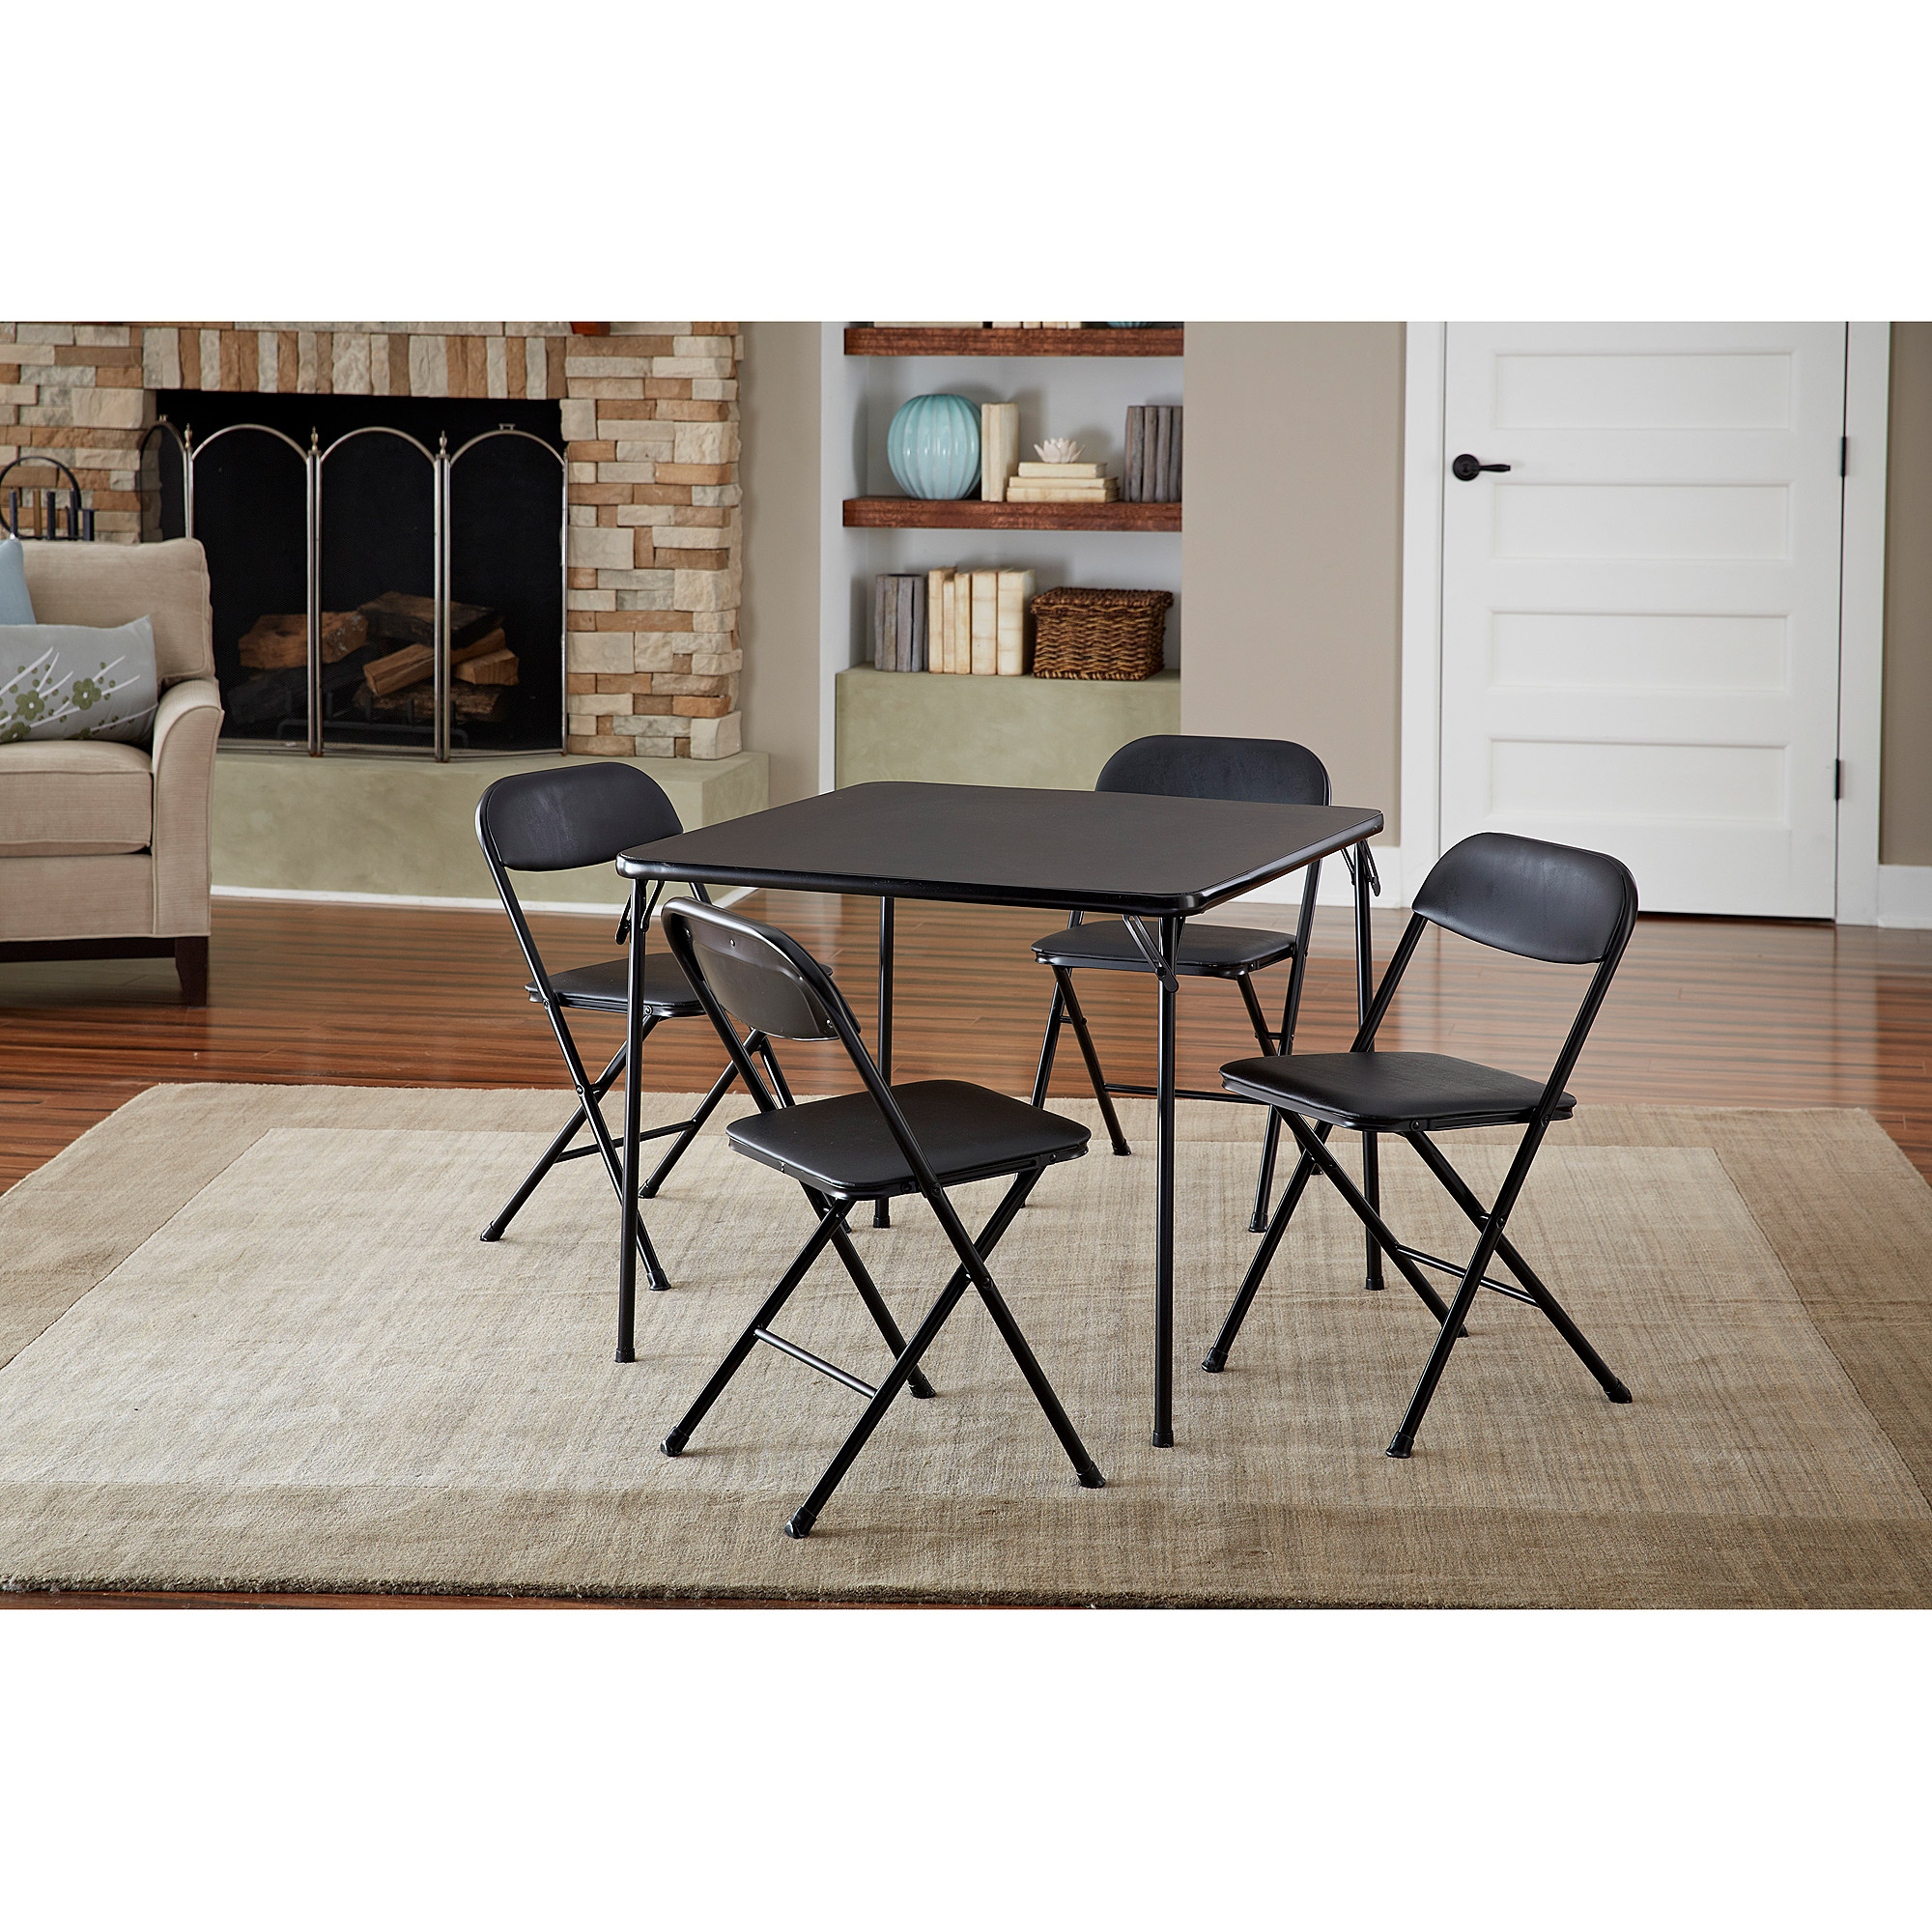 Shop the collection  sc 1 st  Walmart.com & Flex One Folding Chairs Set of 4 Multiple Colors - Walmart.com